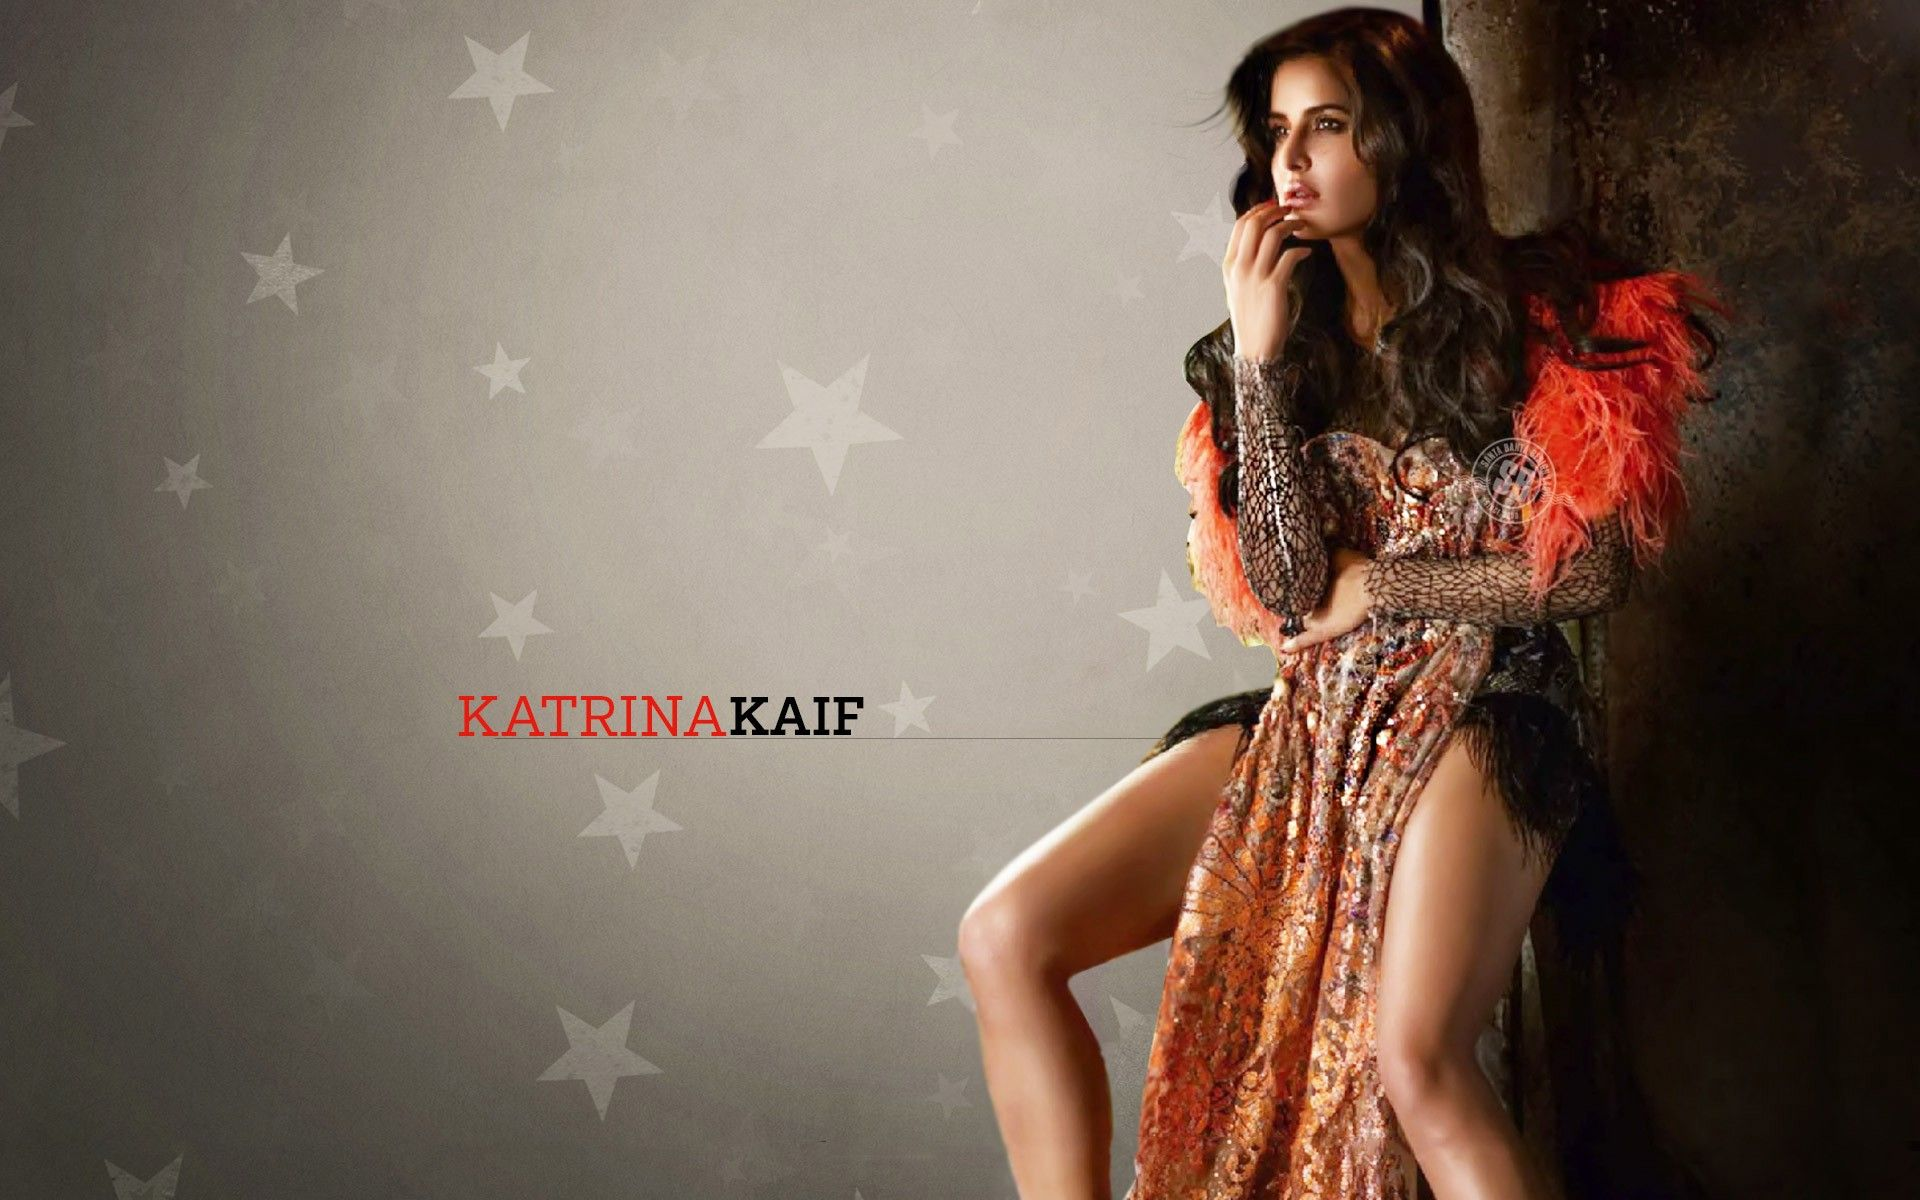 katrina kaif hot hd wallpapers sizzling unseen pictures www